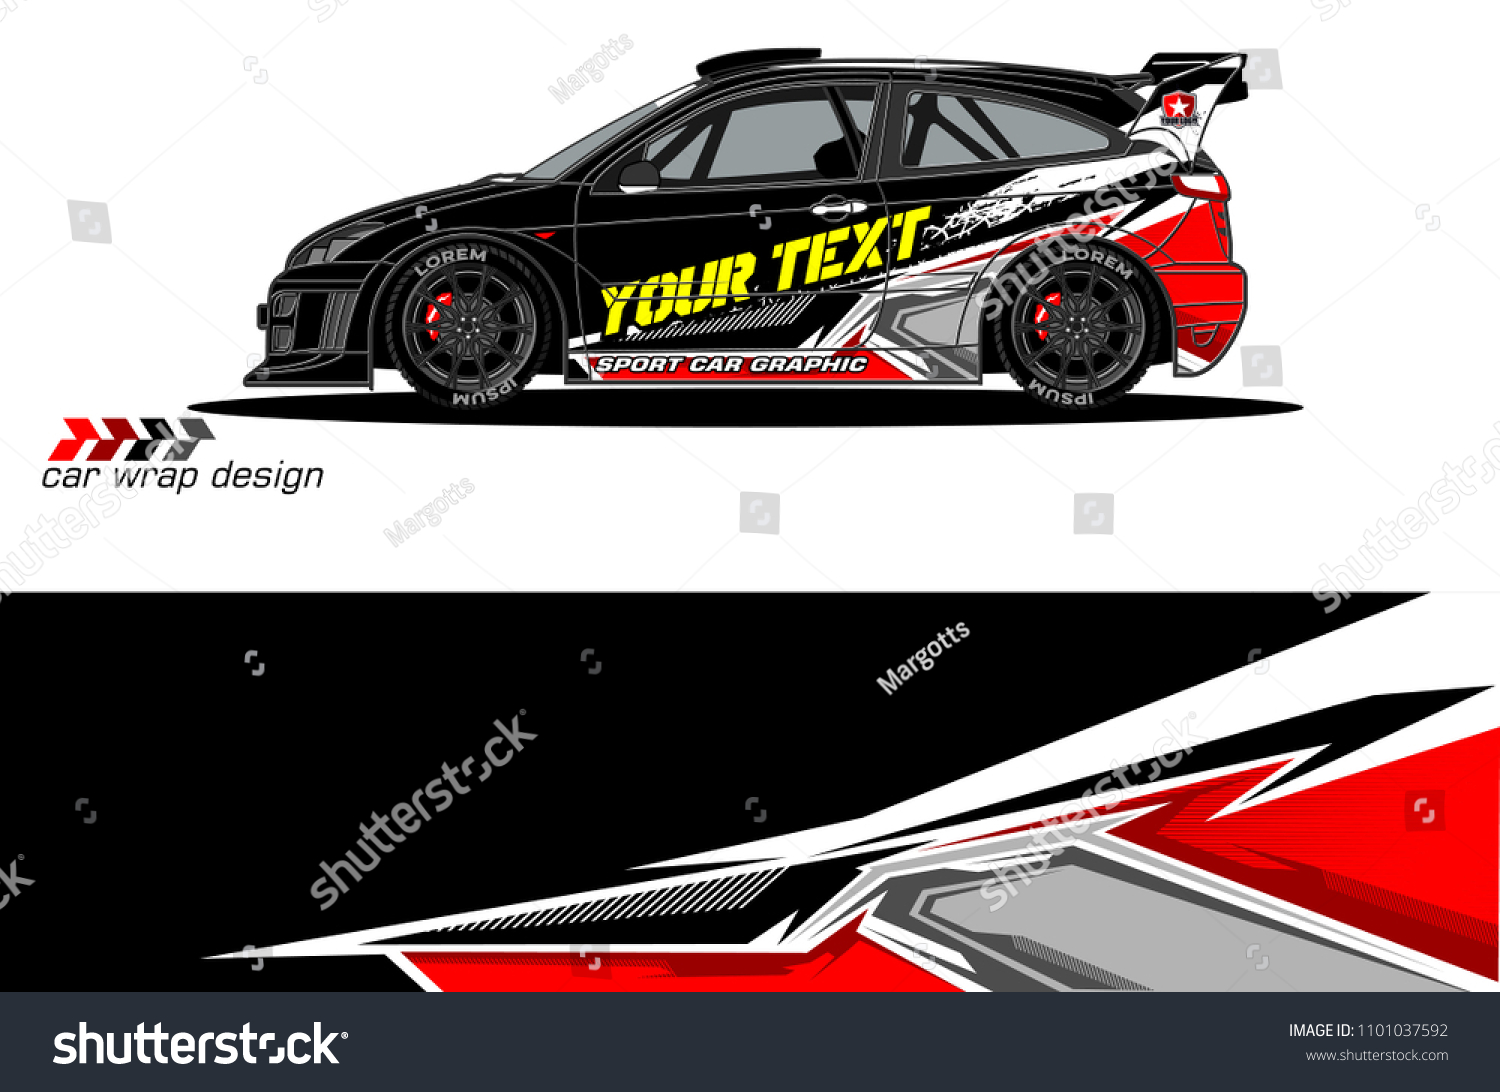 Race car livery vector designs abstract background for vehicle vinyl wrap design